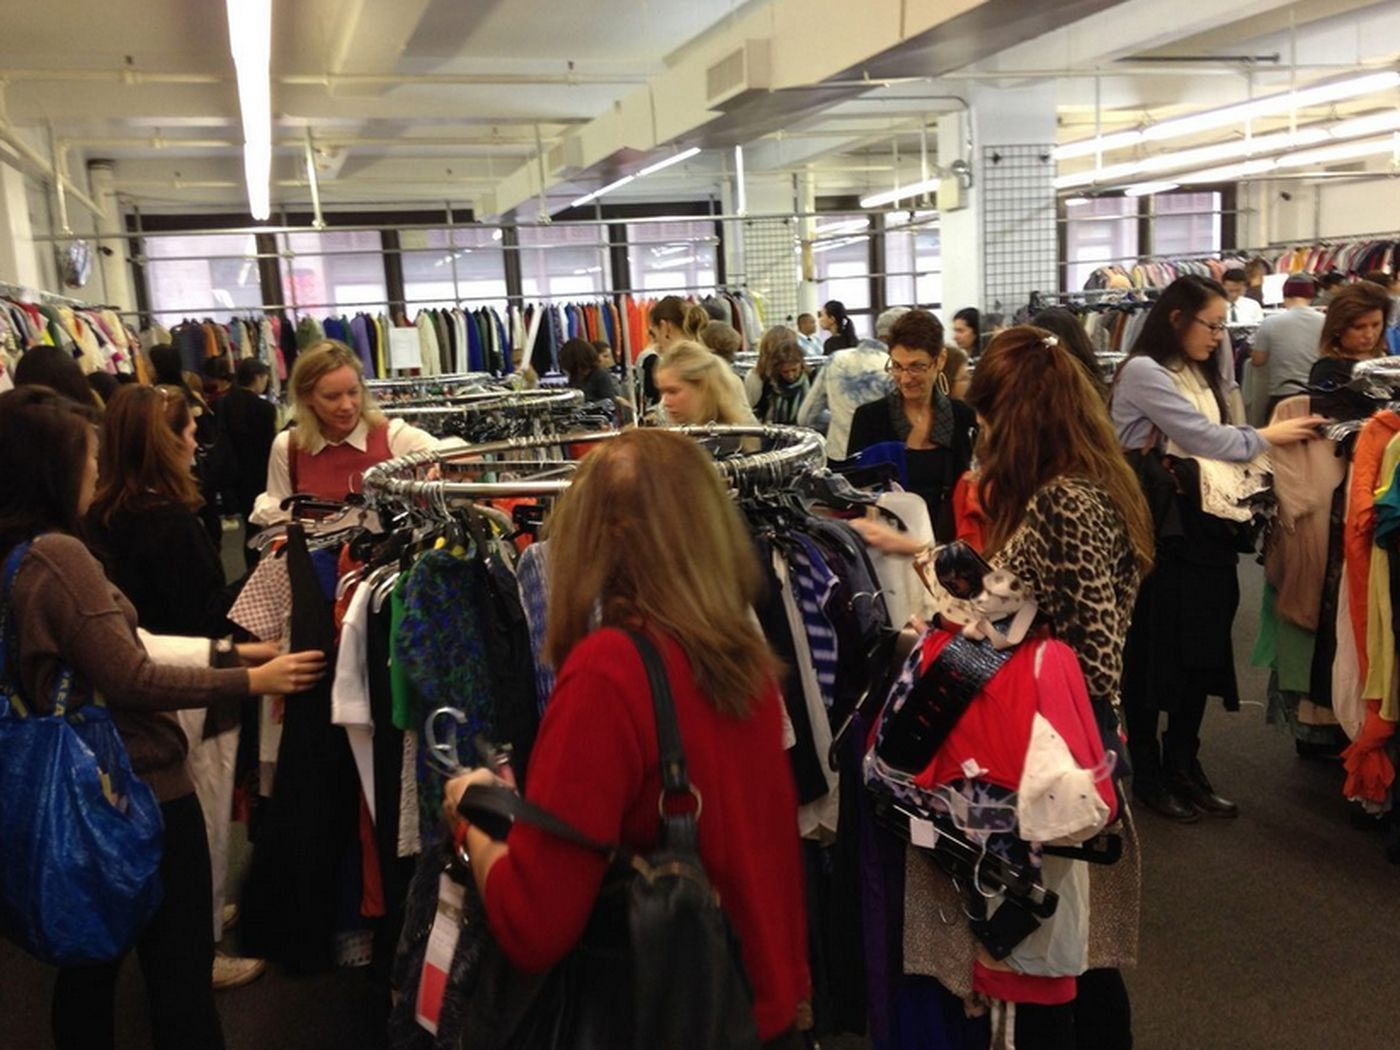 The club monaco sample sale line will test your patience racked ny.